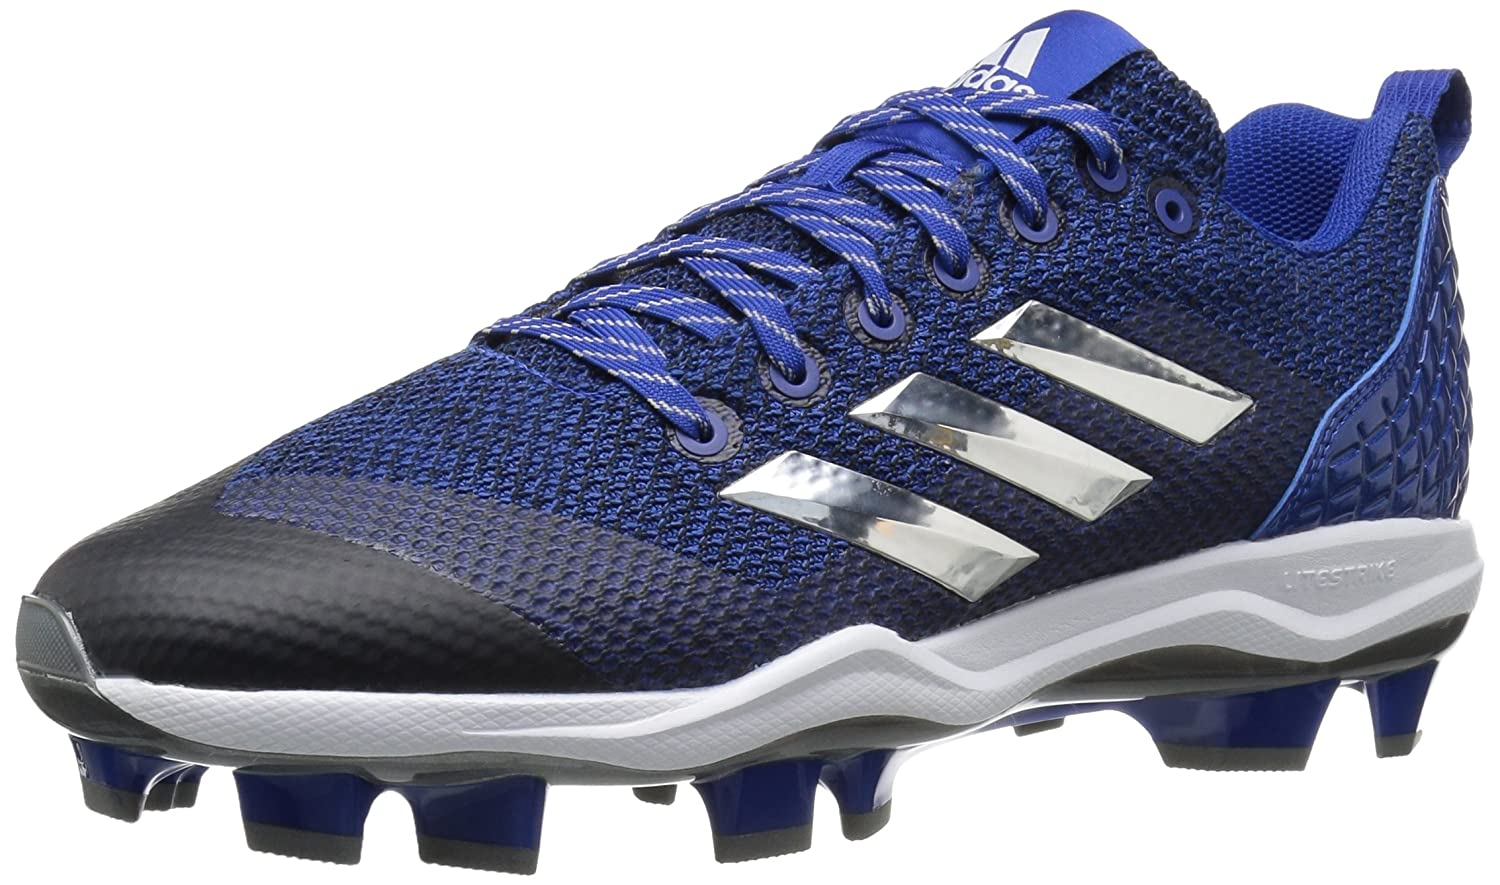 adidas Performance メンズ PowerAlley 5 TPU B01MZ20SG2 11 Medium US|Collegiate Royal/Metallic Silver/White Collegiate Royal/Metallic Silver/White 11 Medium US